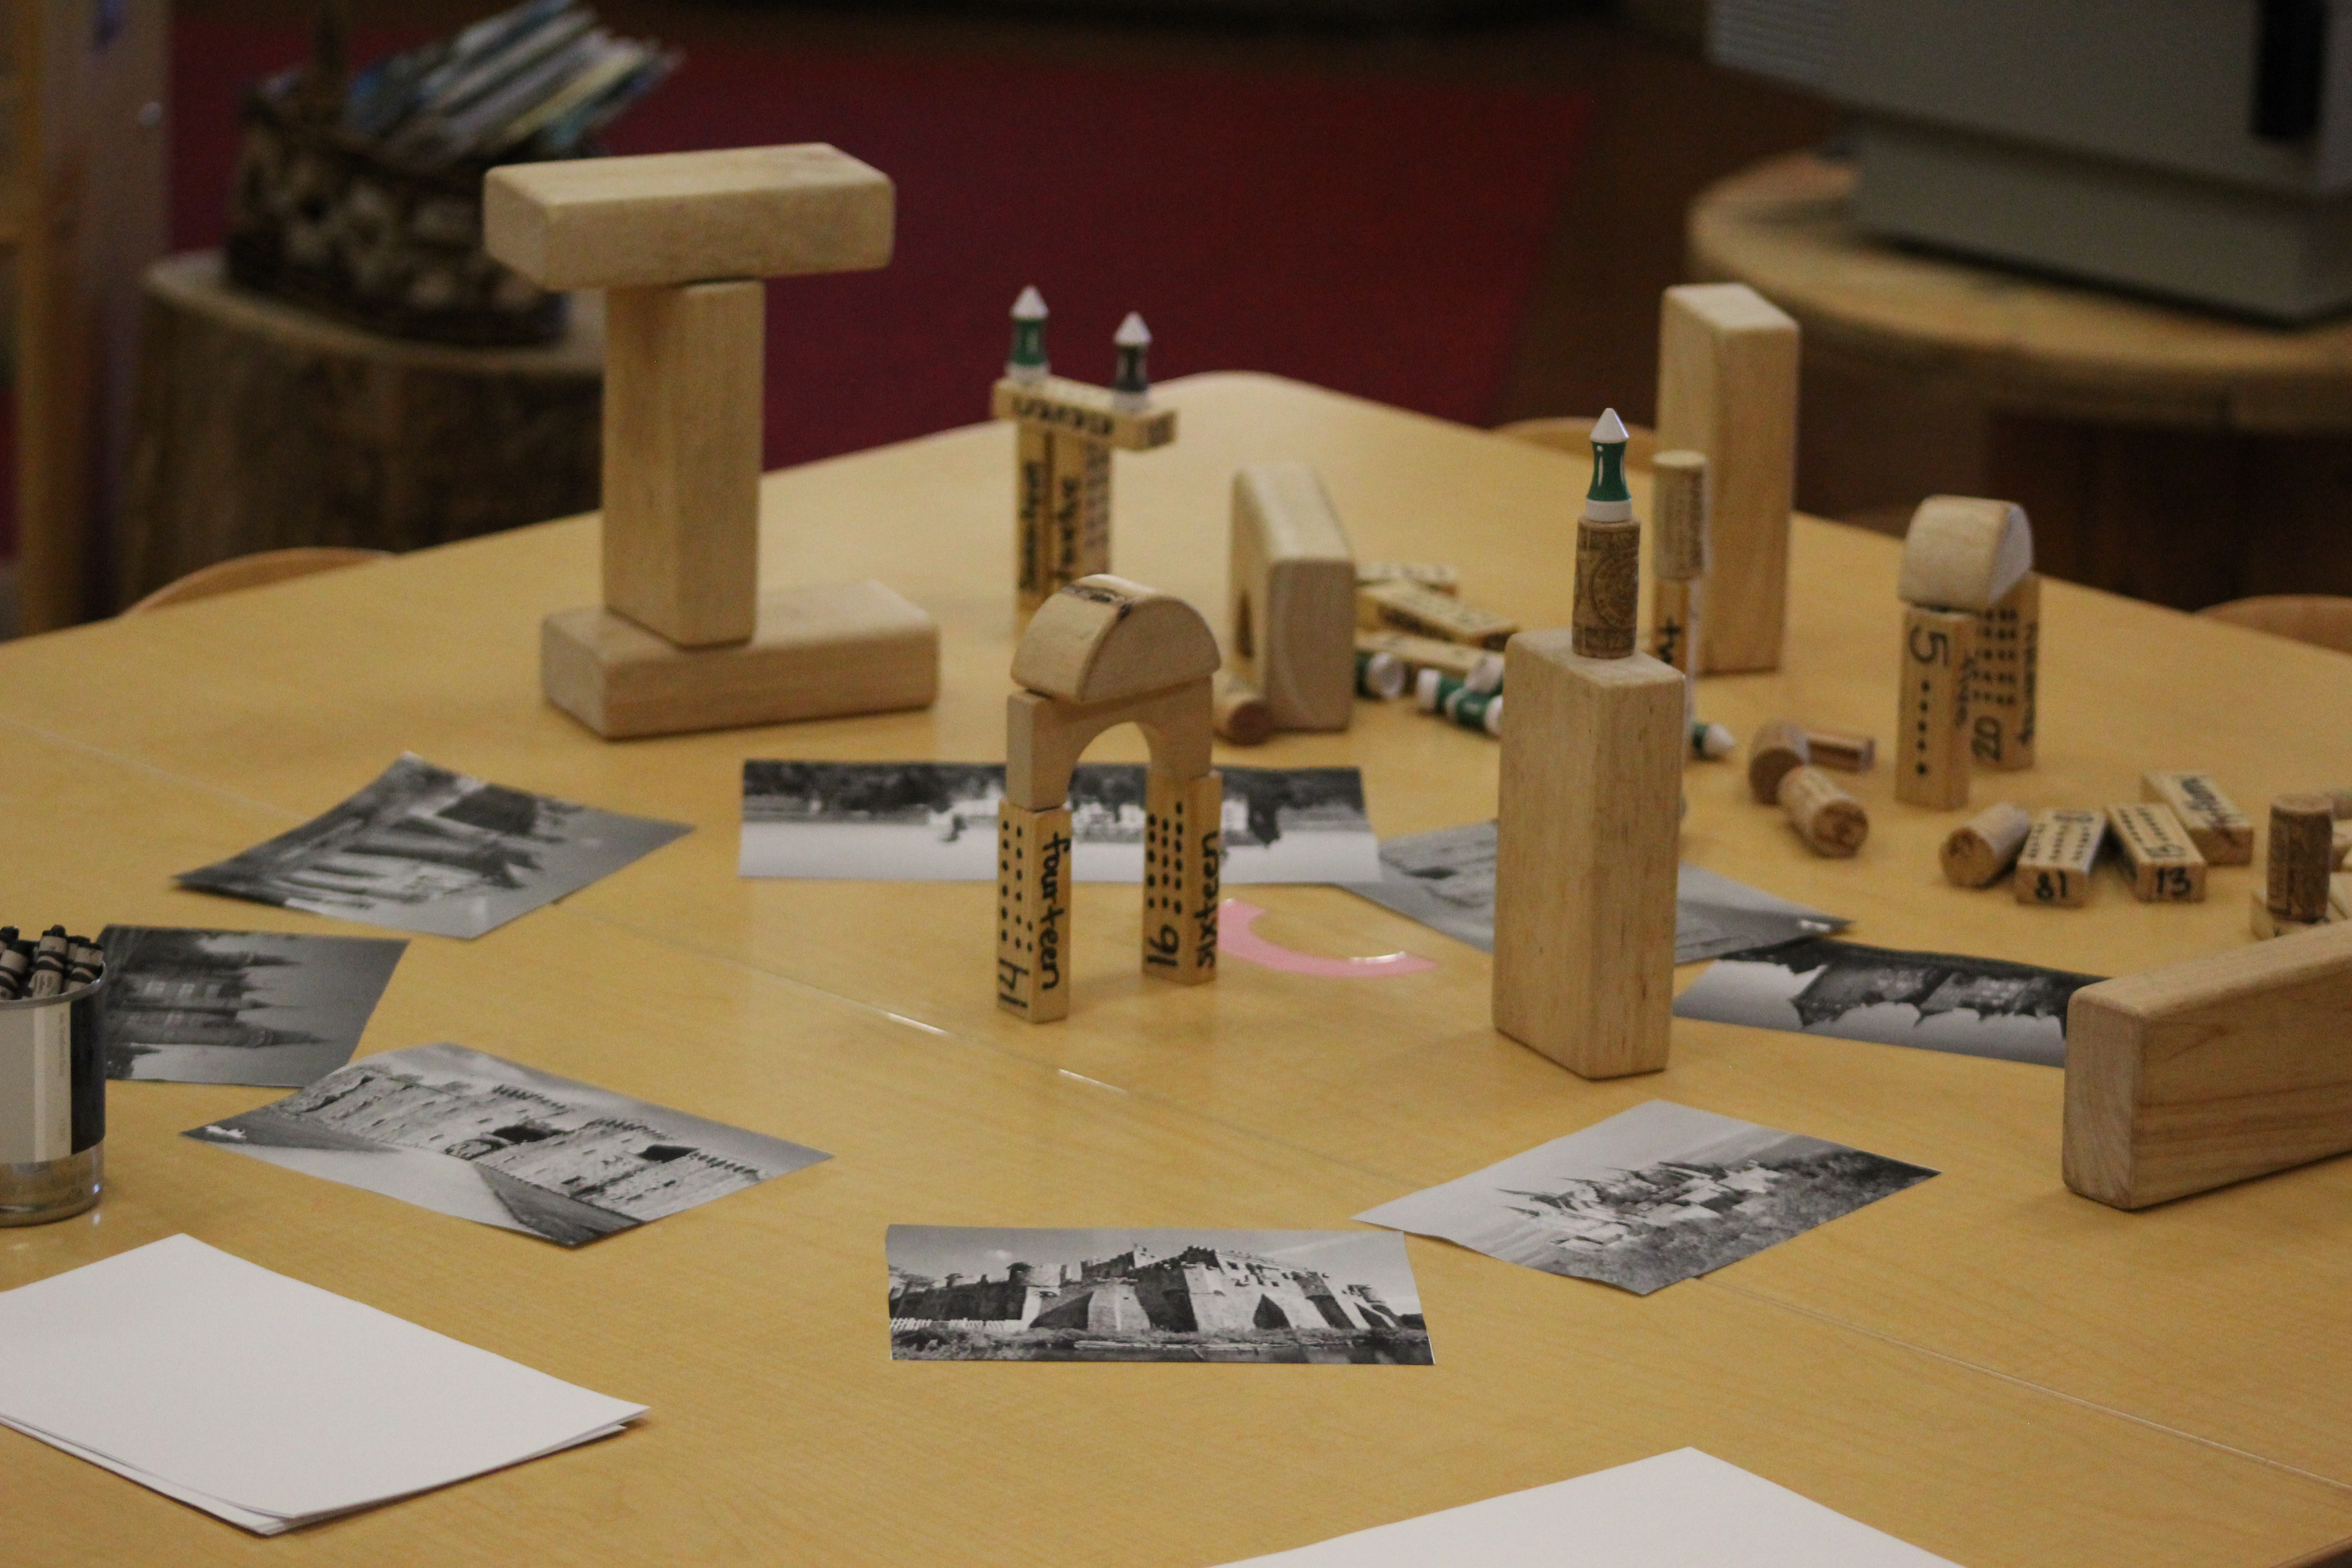 Construction Provocations